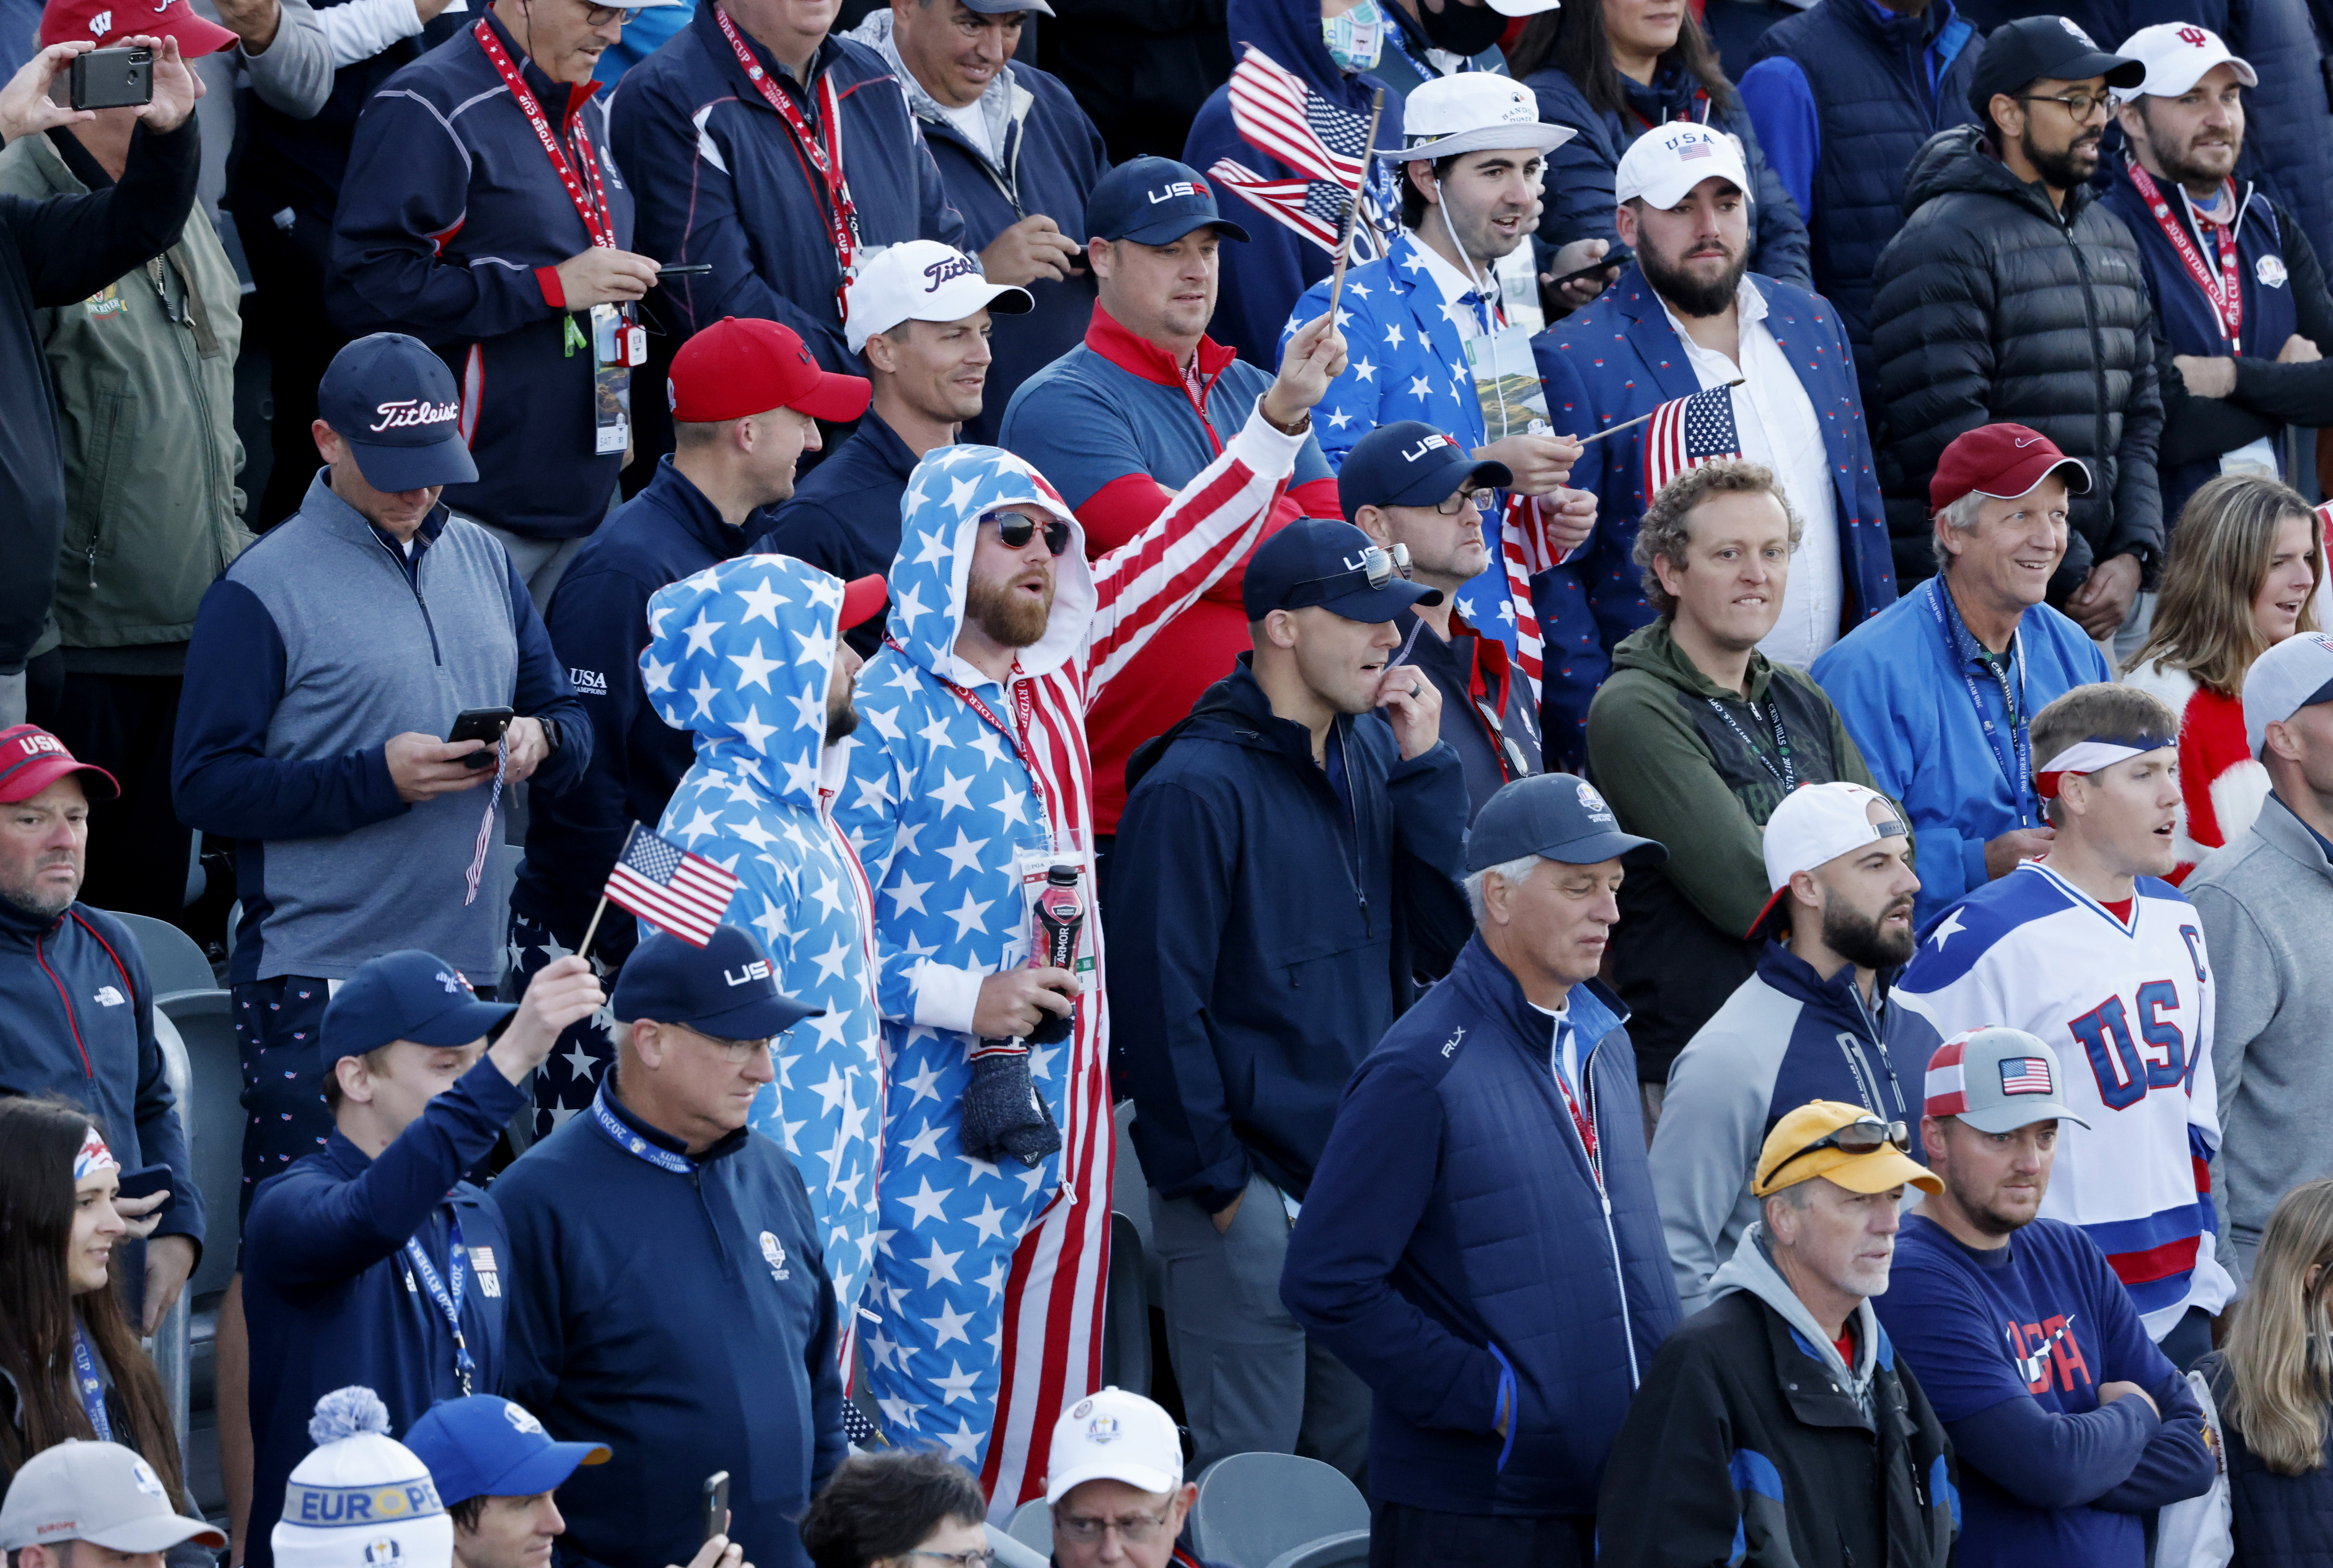 Golf - The 2020 Ryder Cup - Whistling Straits, Sheboygan, Wisconsin, U.S. - September 25, 2021 Team USA fans at the 1st tee during the Foursomes REUTERS/Jonathan Ernst